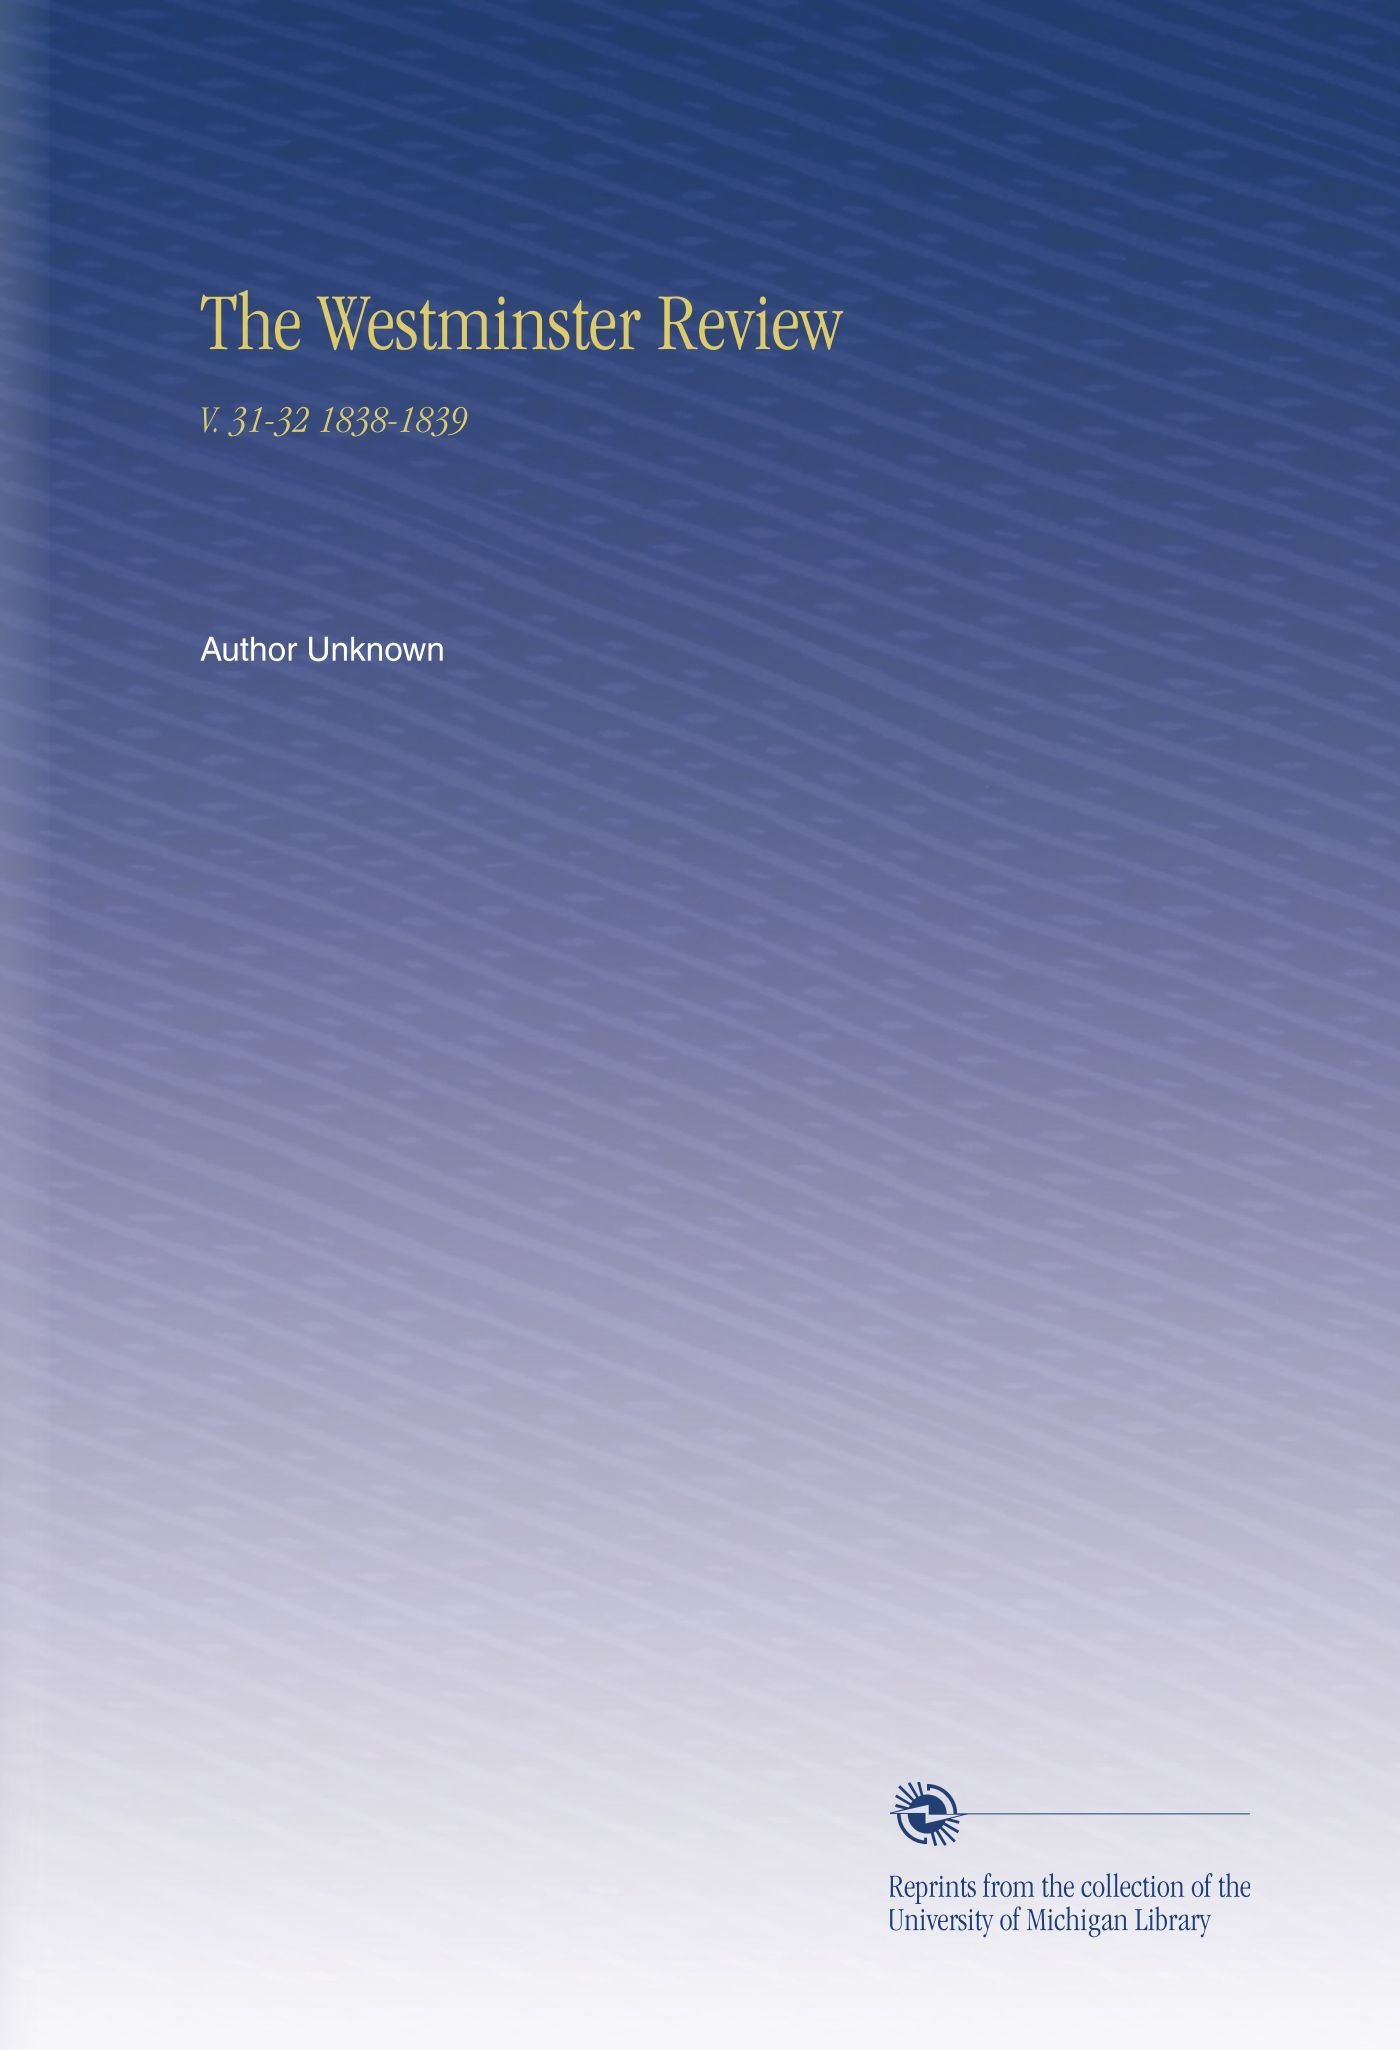 Download The Westminster Review: V. 31-32 1838-1839 PDF